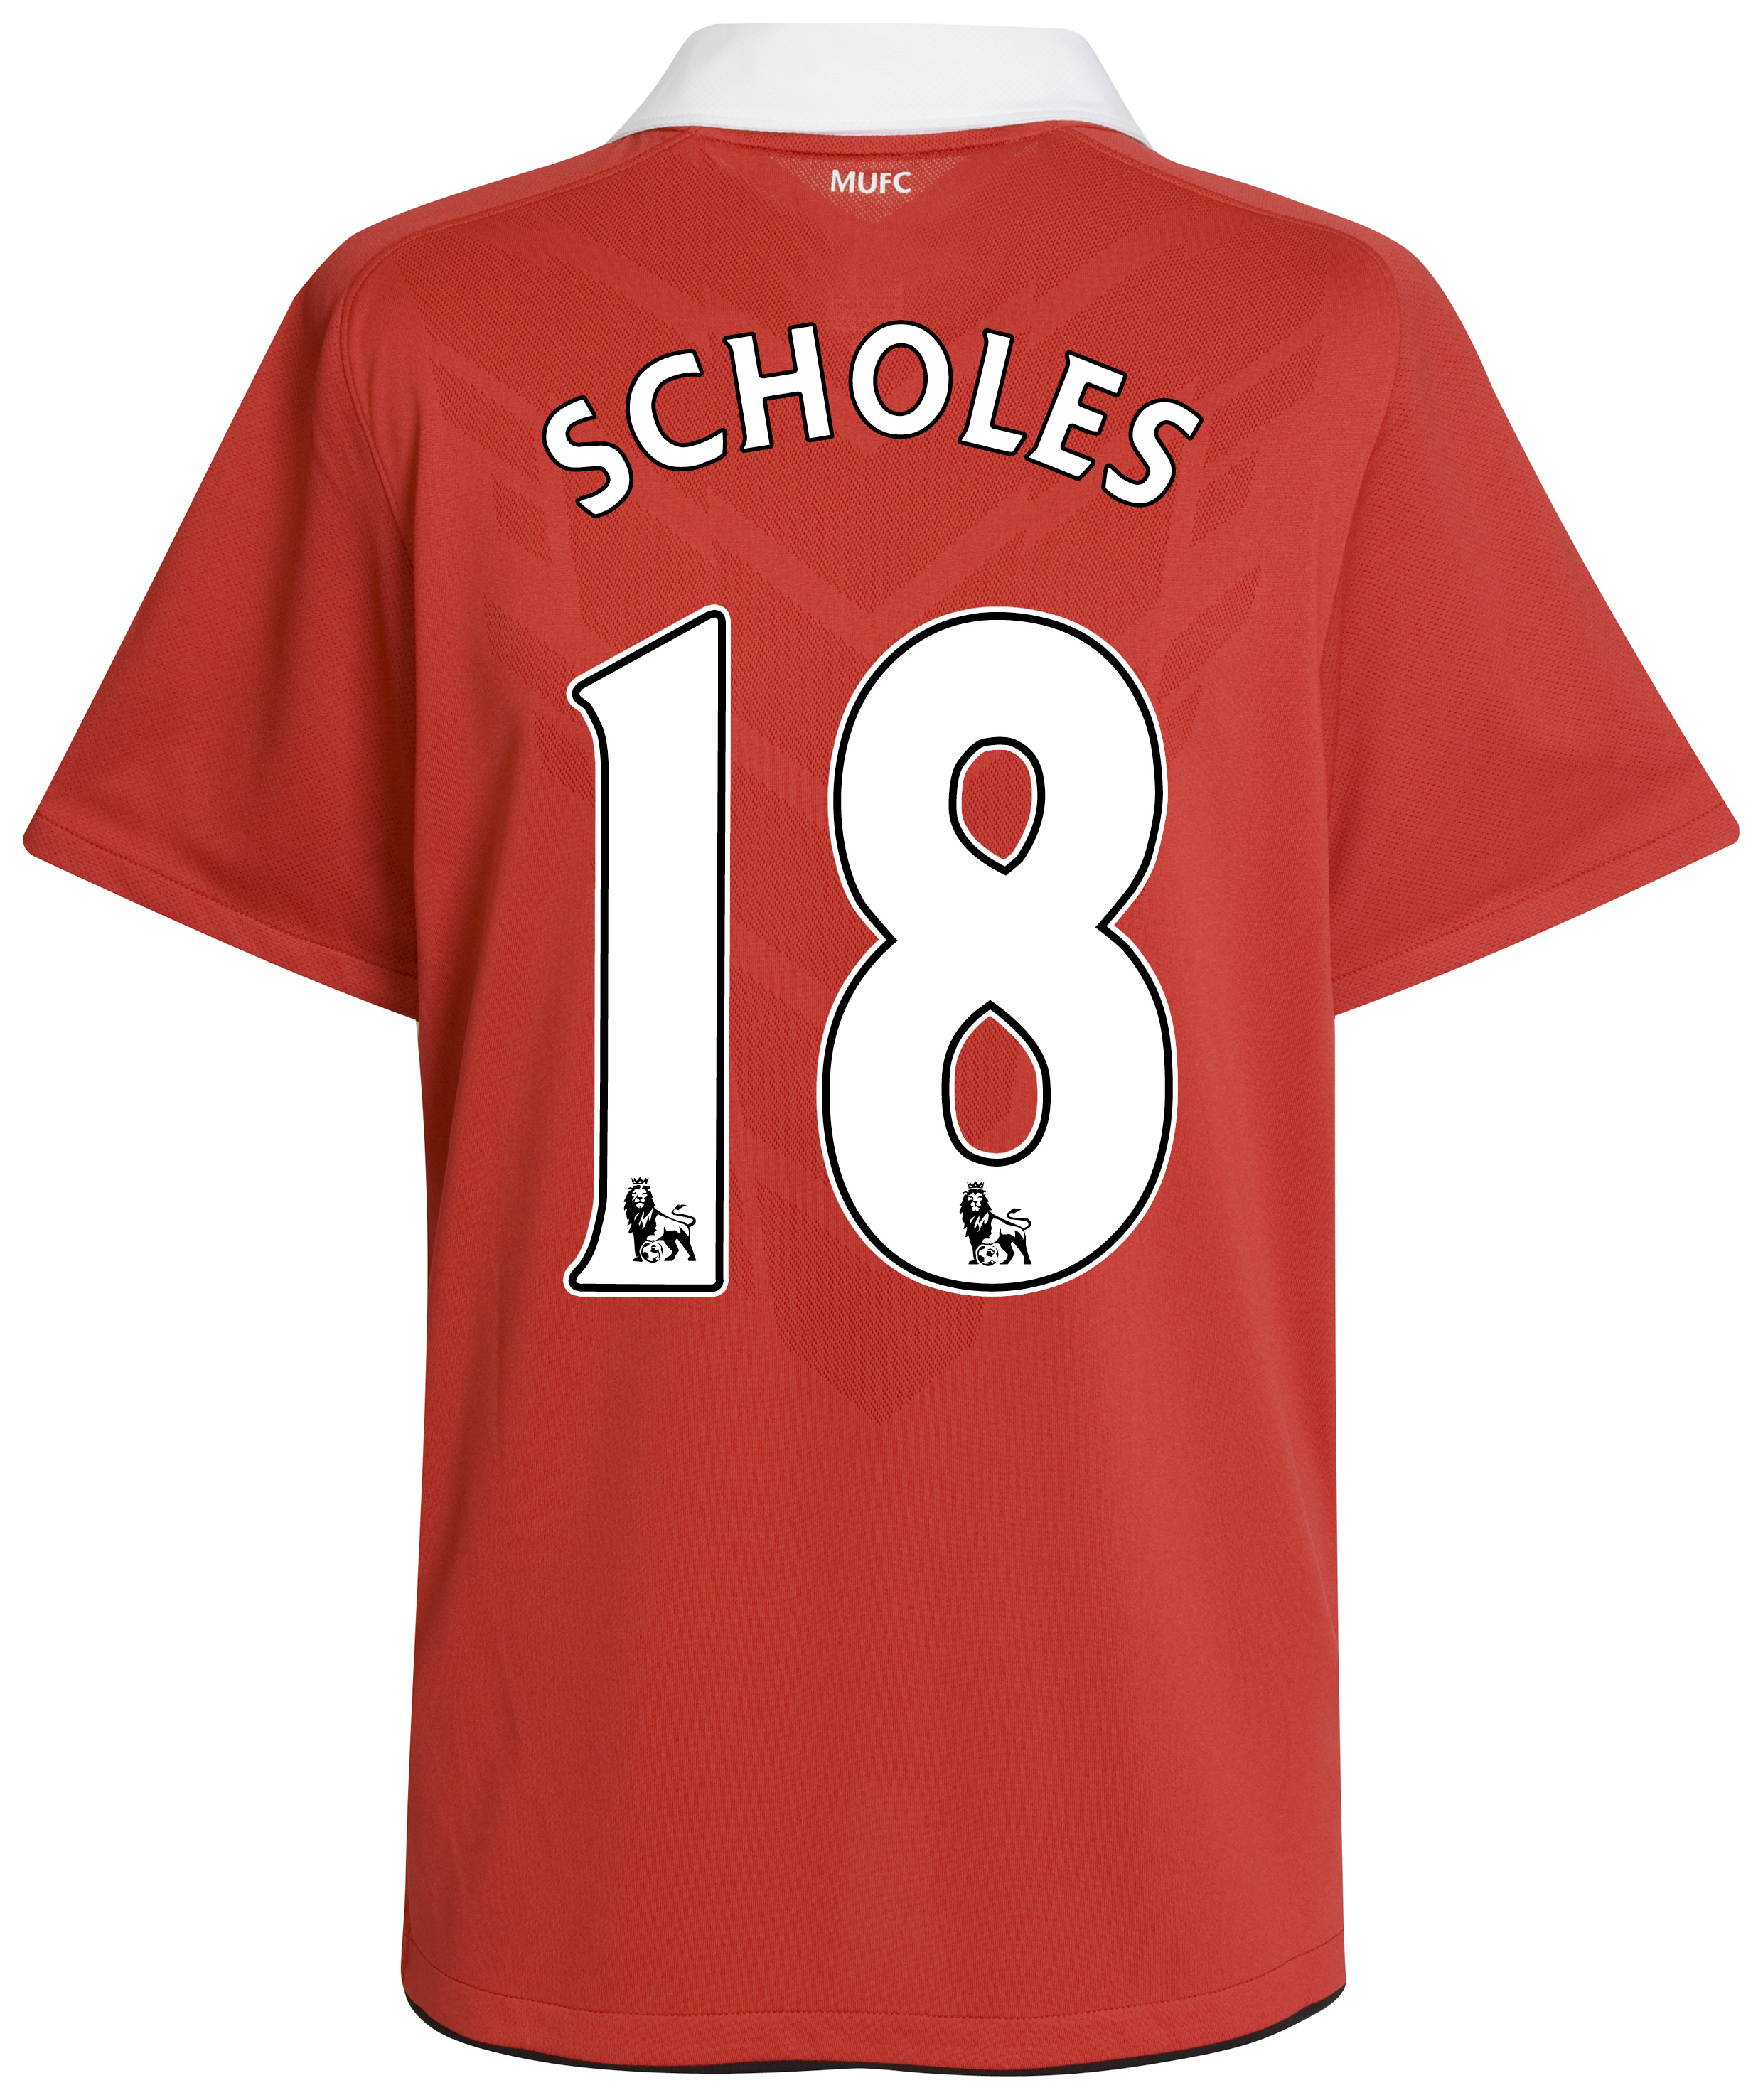 Manchester United Home Shirt 2010/11 with Scholes 18 printing